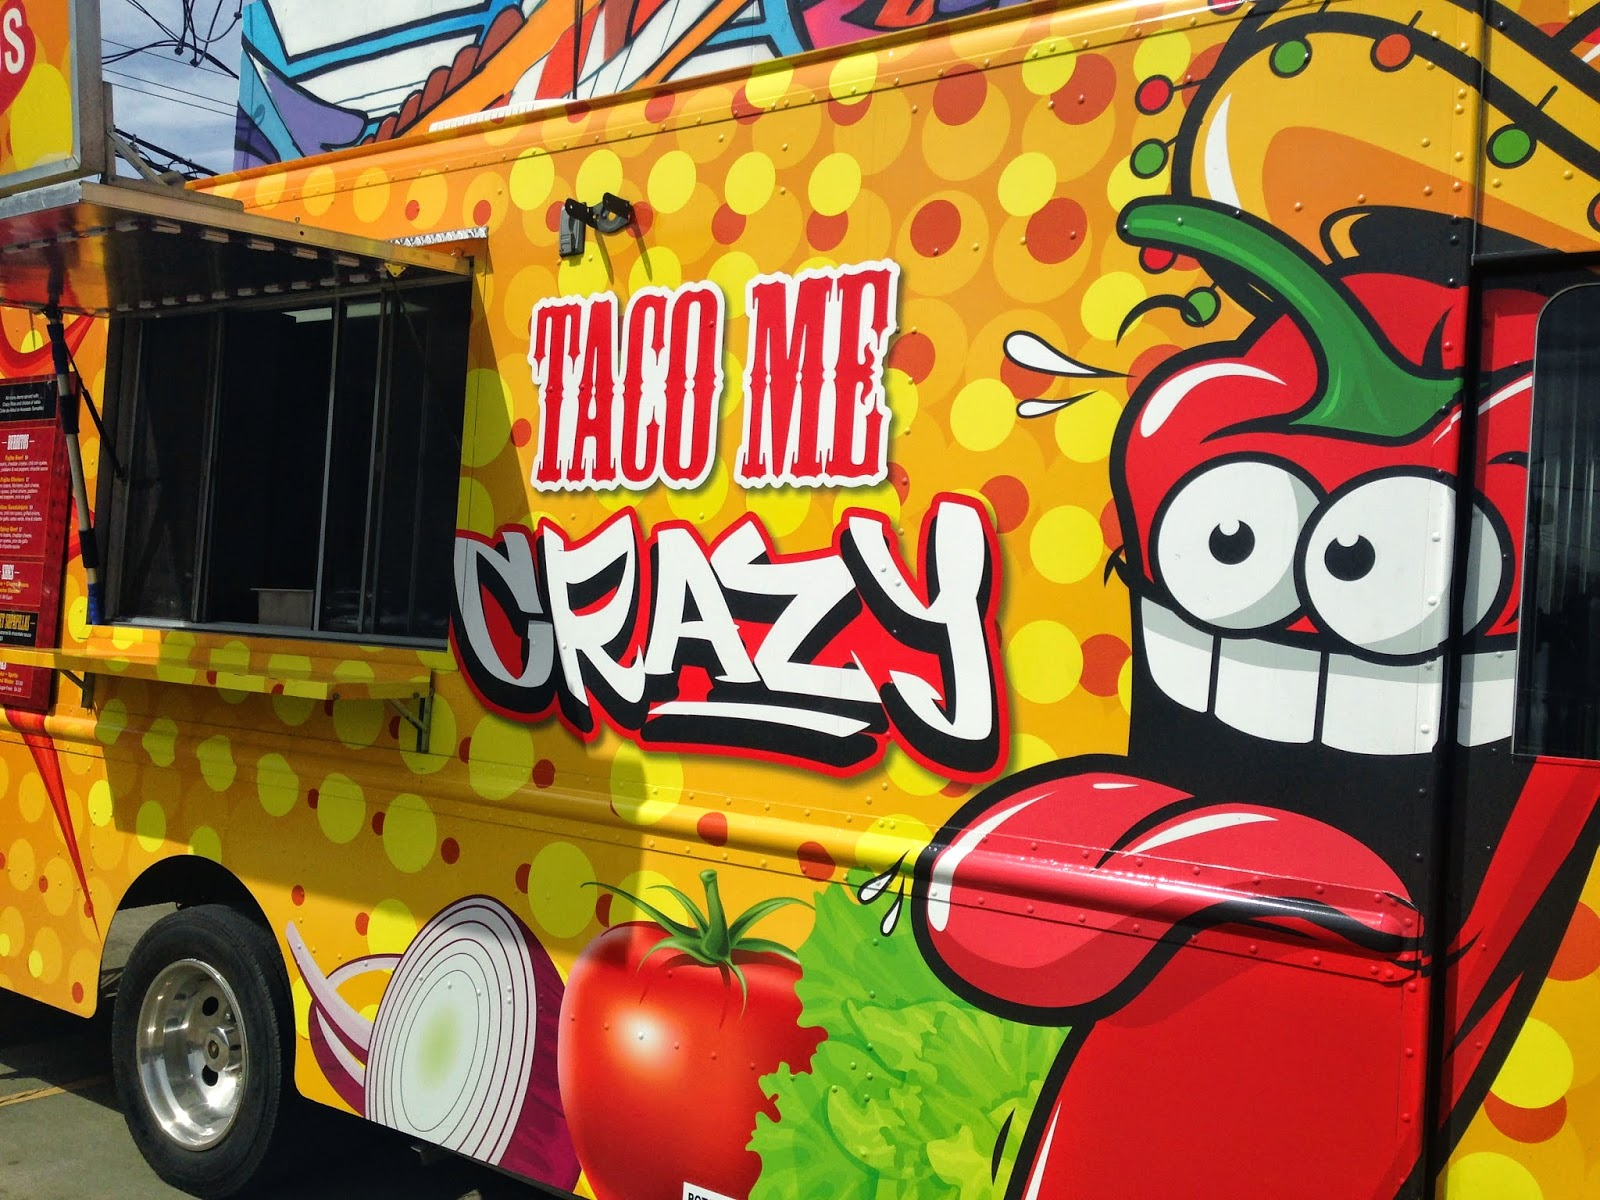 Taco Me Crazy Food Truck, Houston TX